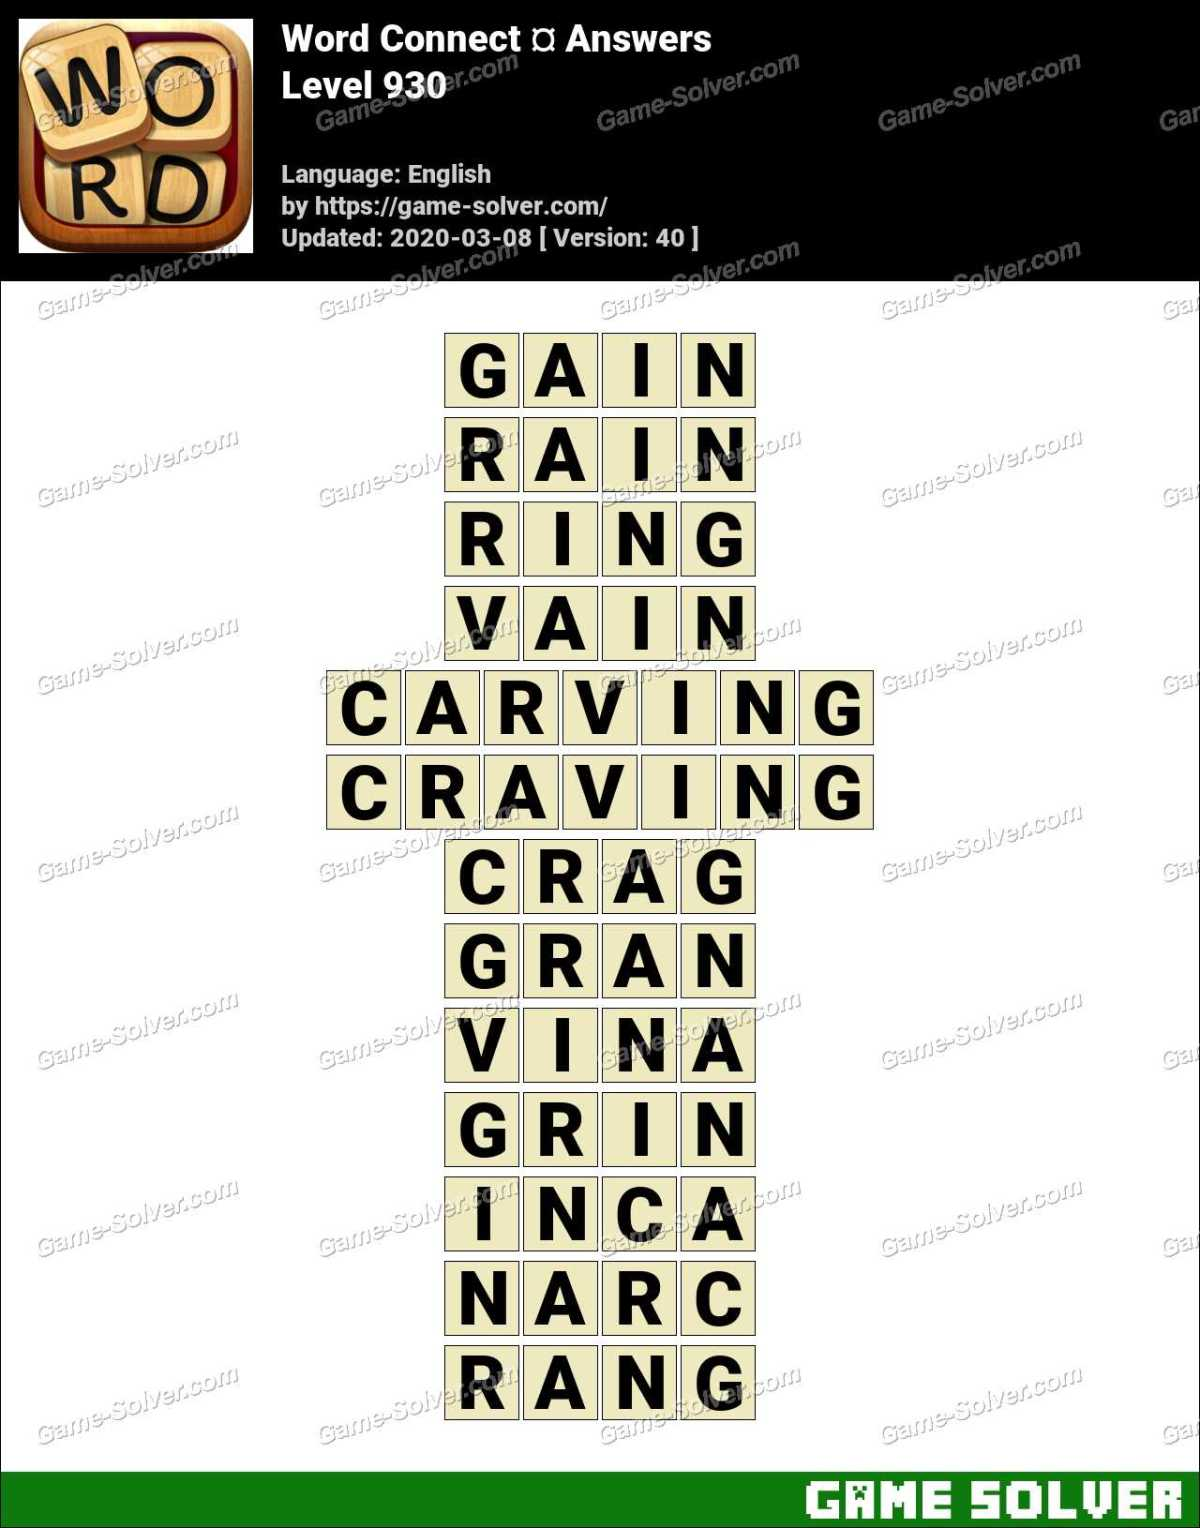 Word Connect Level 930 Answers